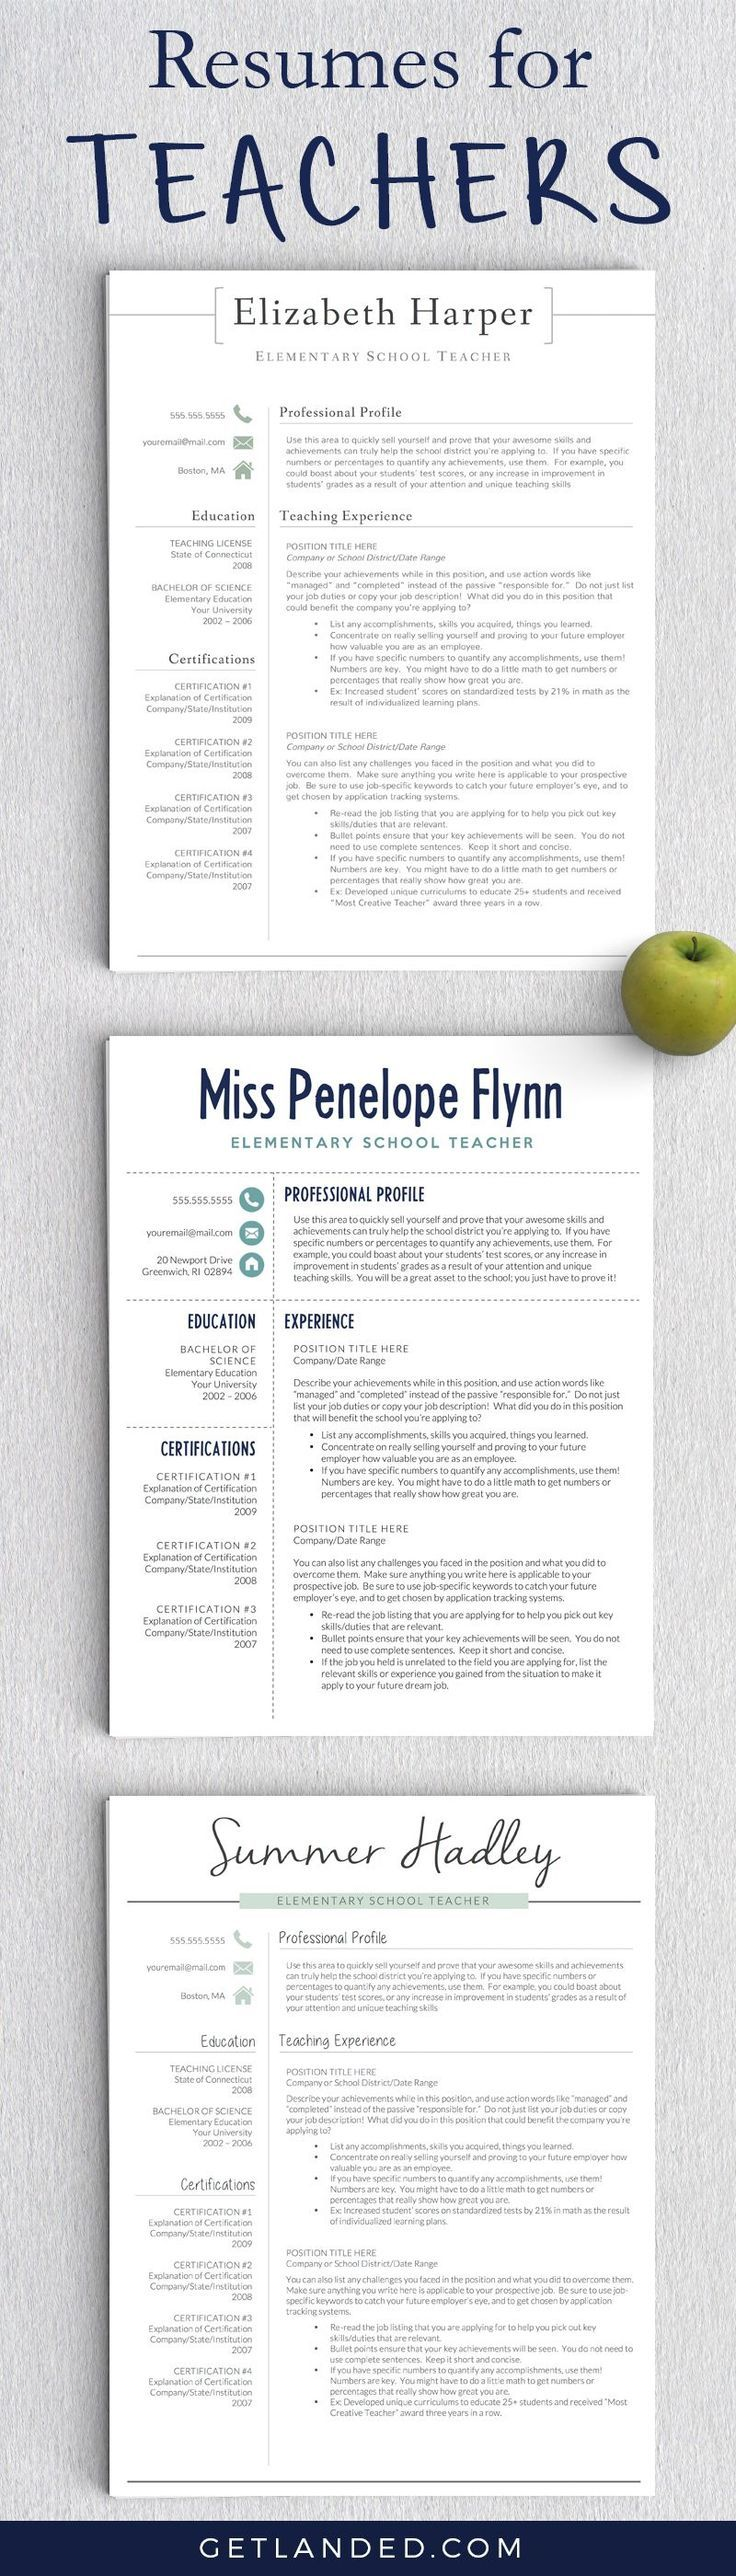 Resumes designed for teachers and educators. Teacher resume | Teacher resume tips | Educator resume